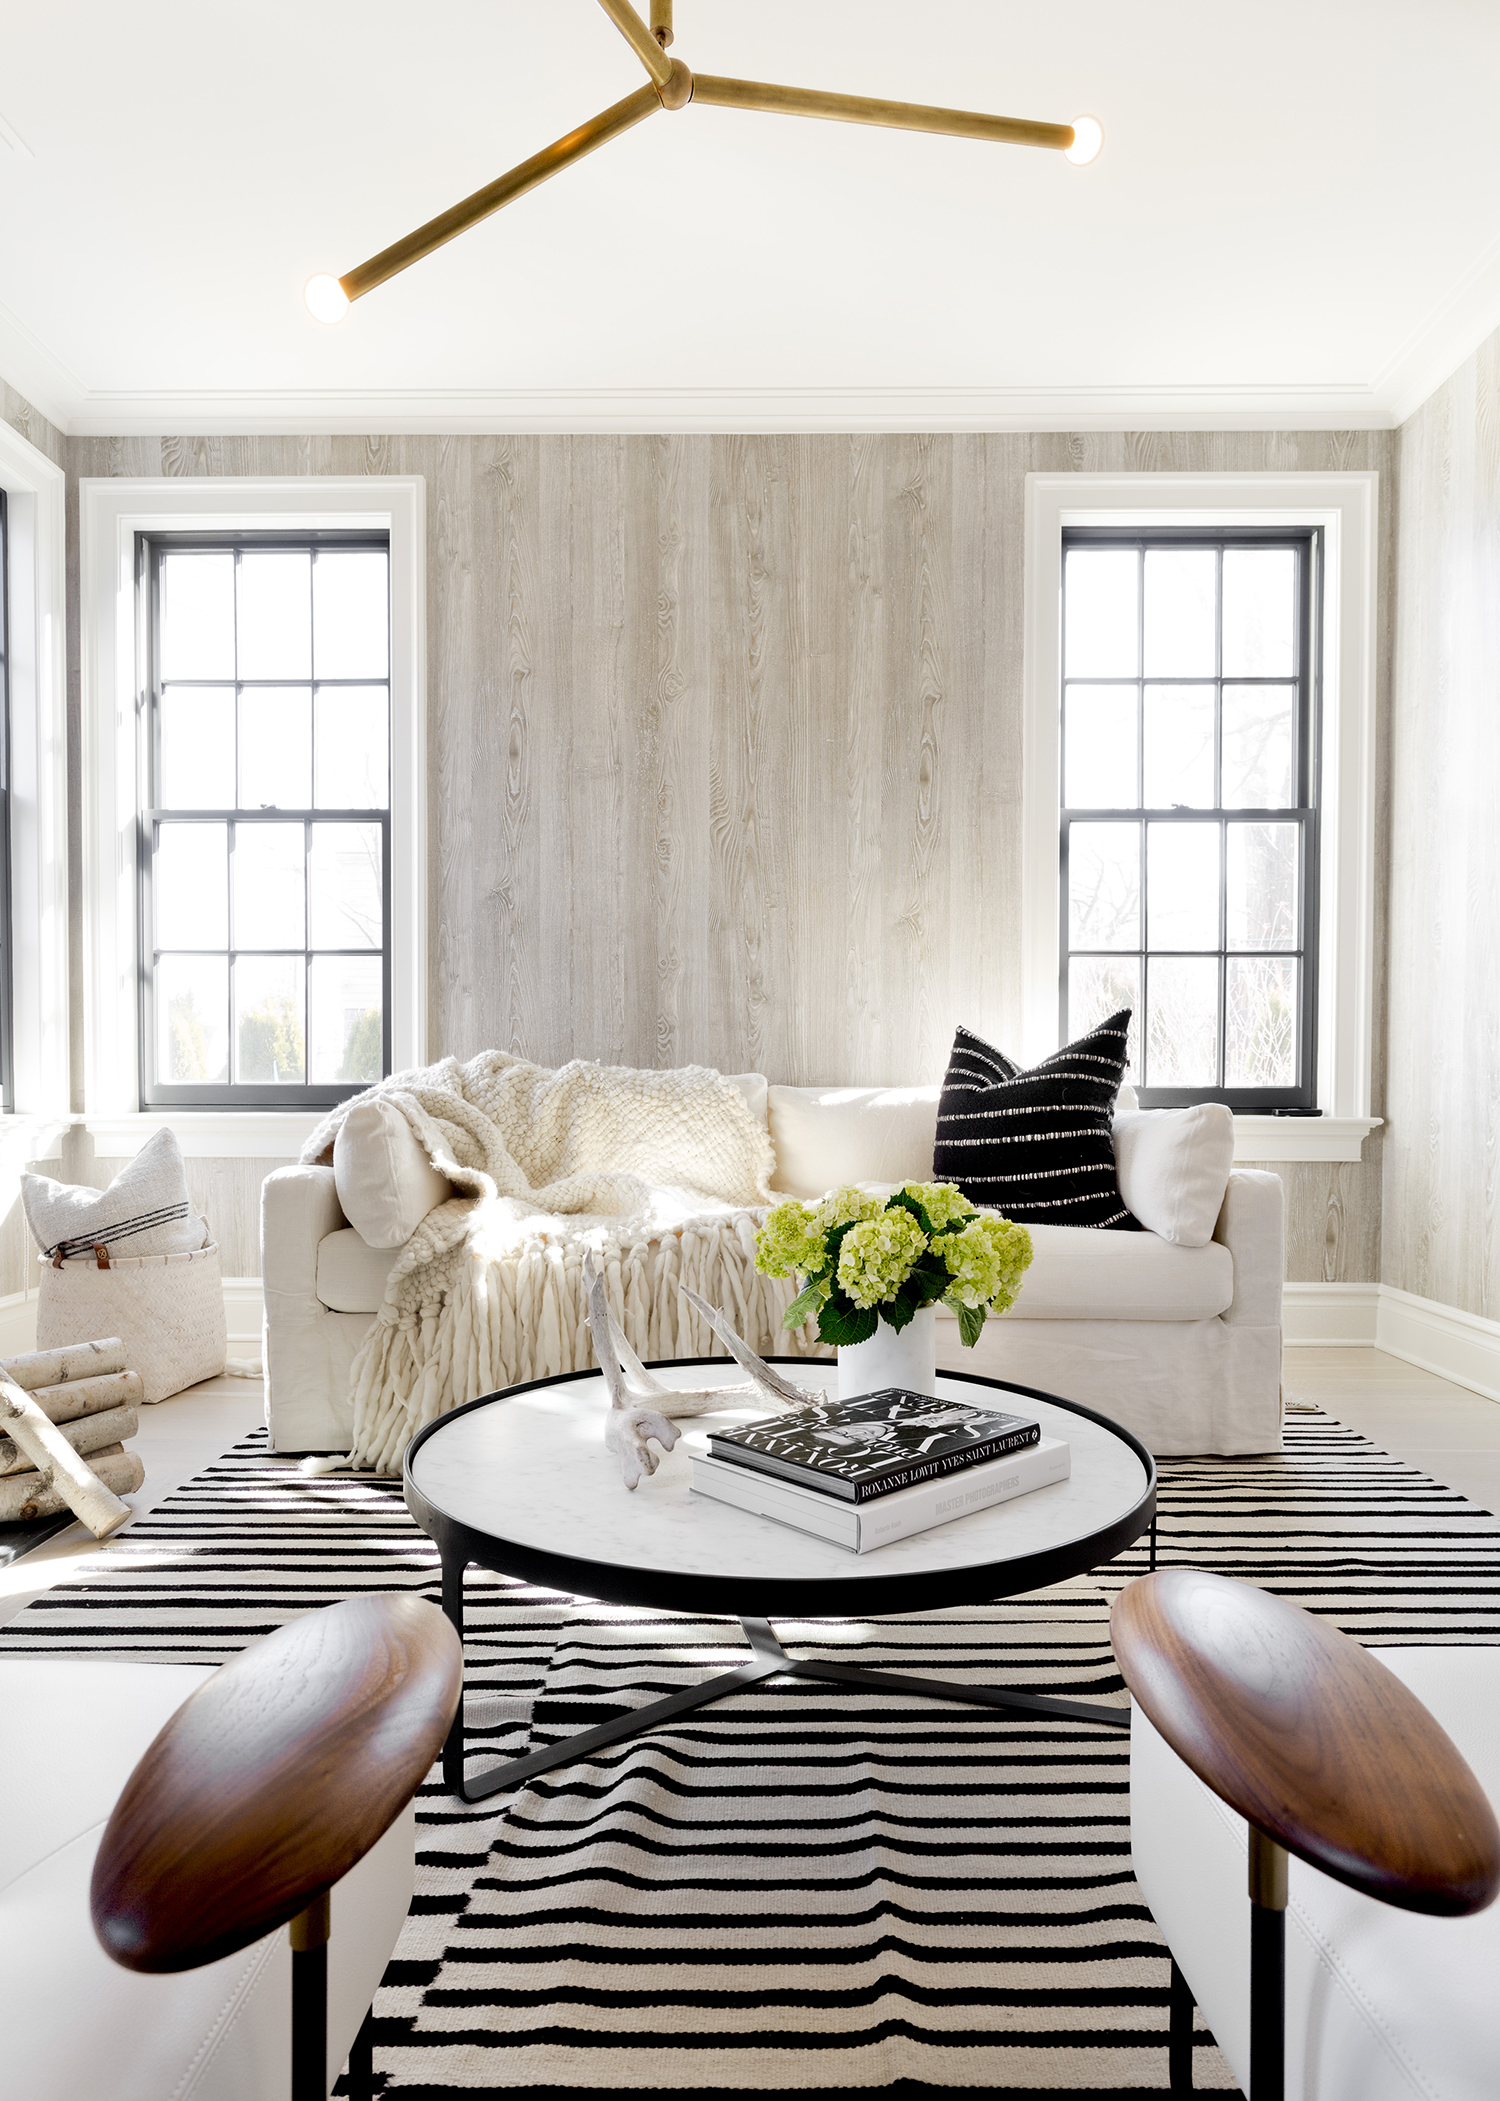 How to style a coffee table 1